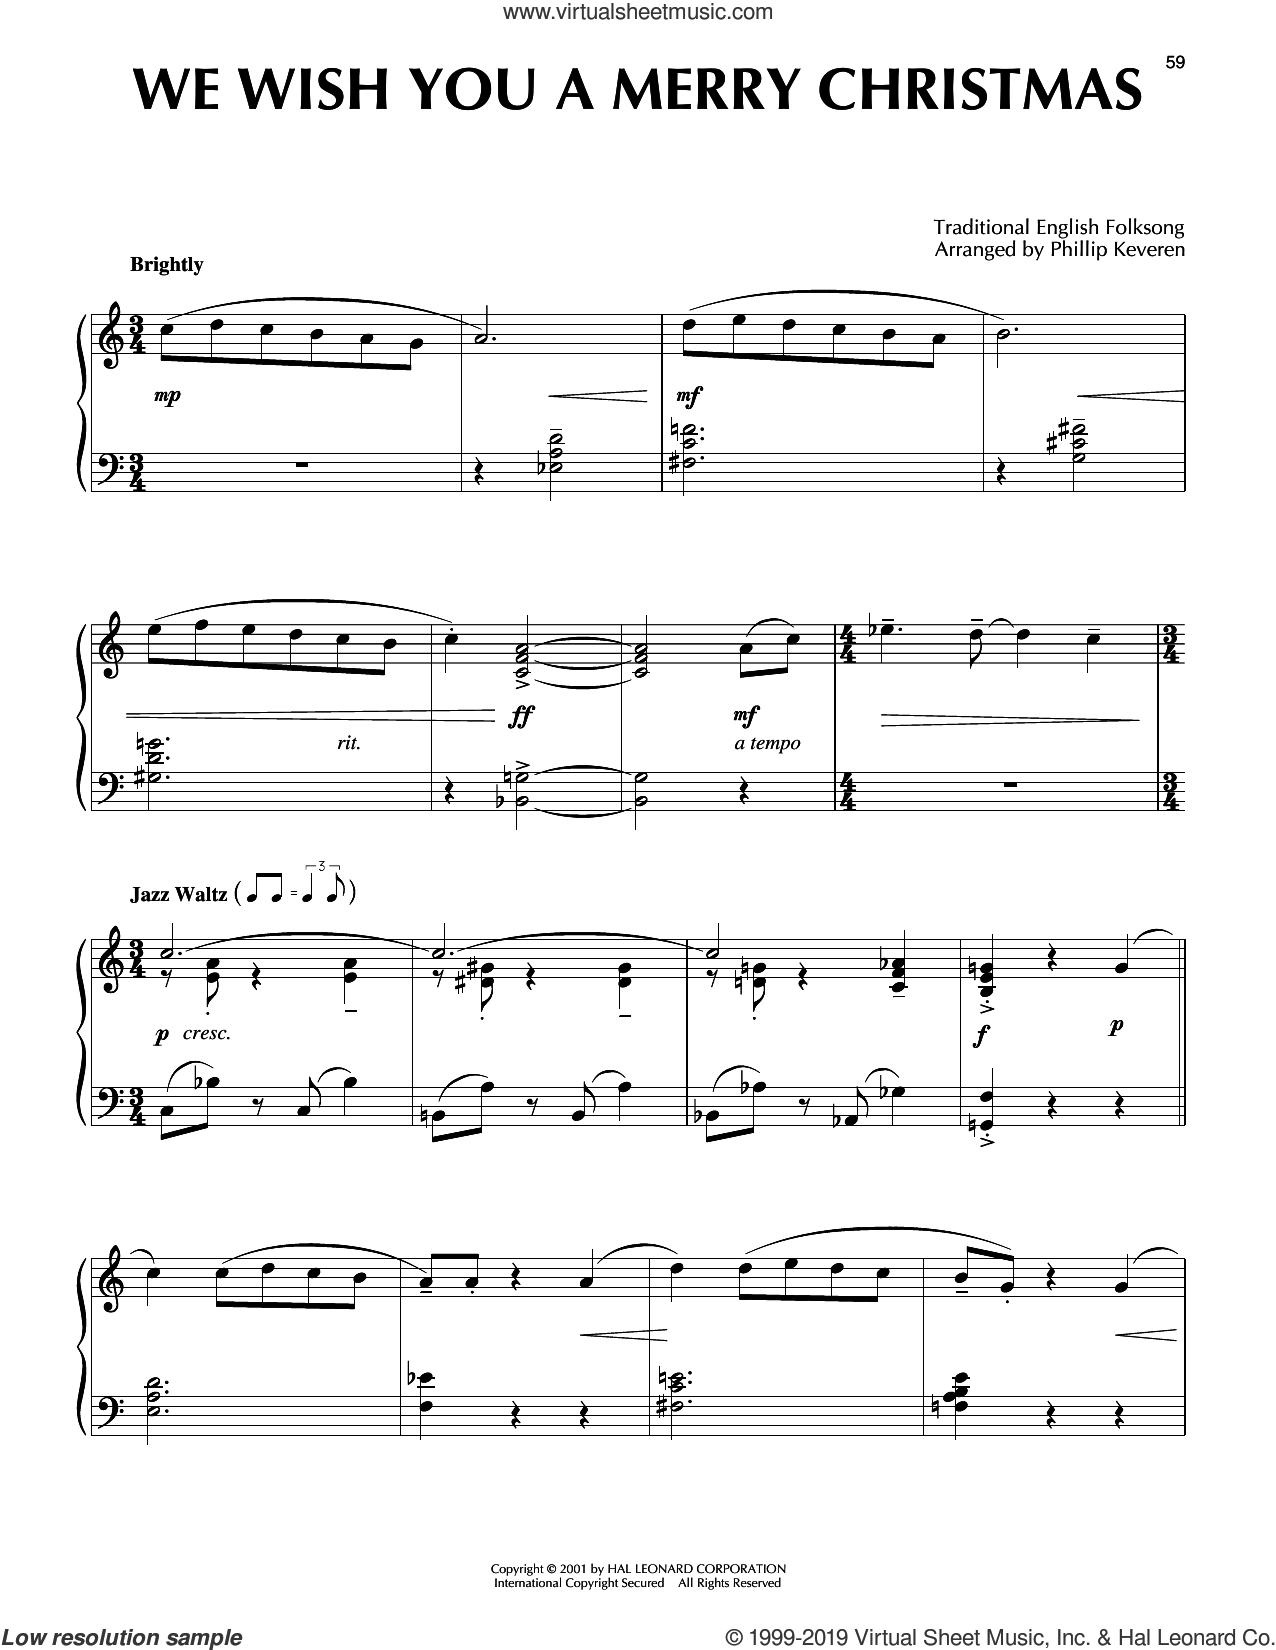 We Wish You A Merry Christmas [Jazz version] (arr. Phillip Keveren) sheet music for piano solo  and Phillip Keveren, intermediate skill level